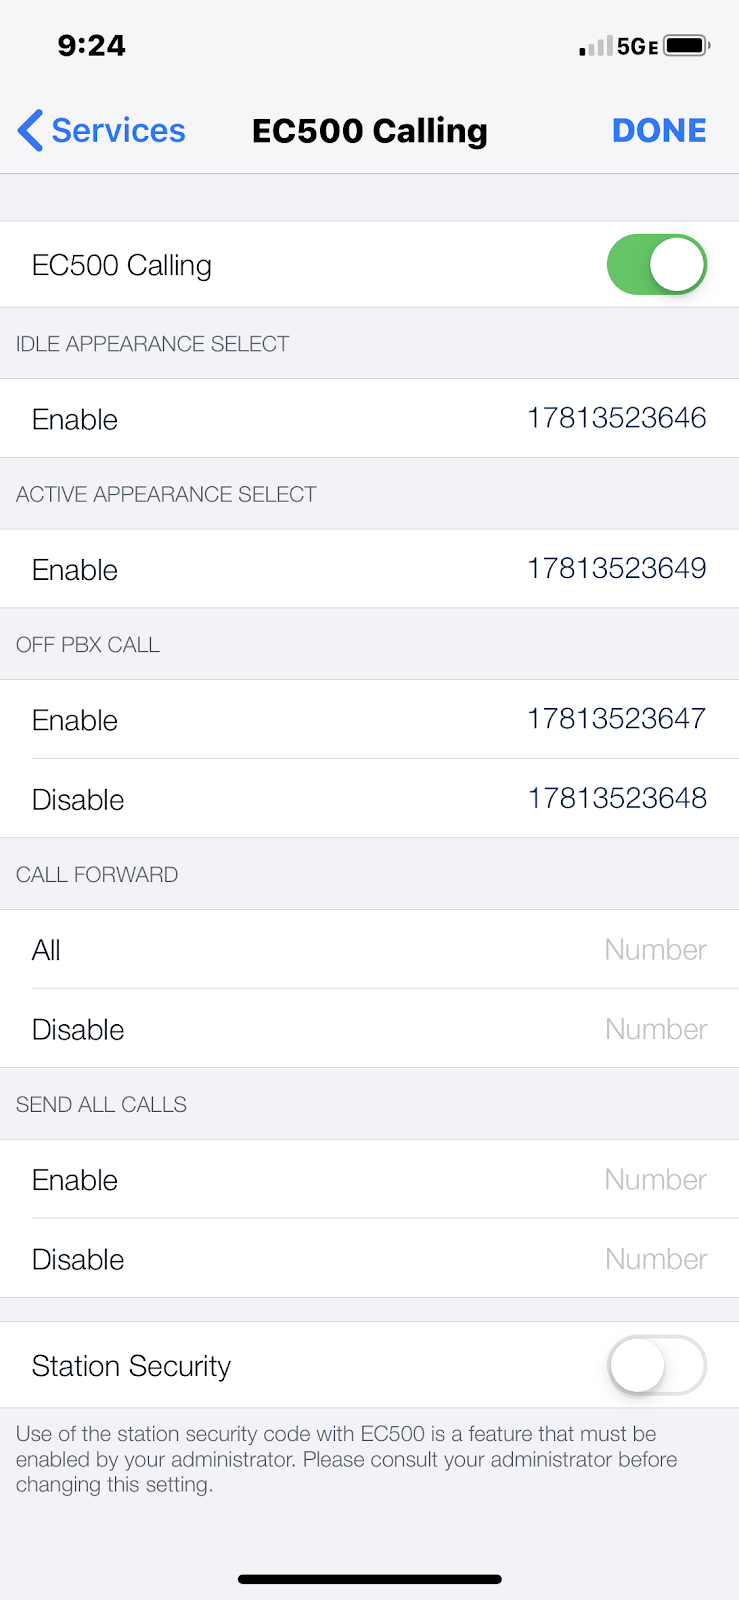 Avaya Equinox iOS adding direct inward dial numbers